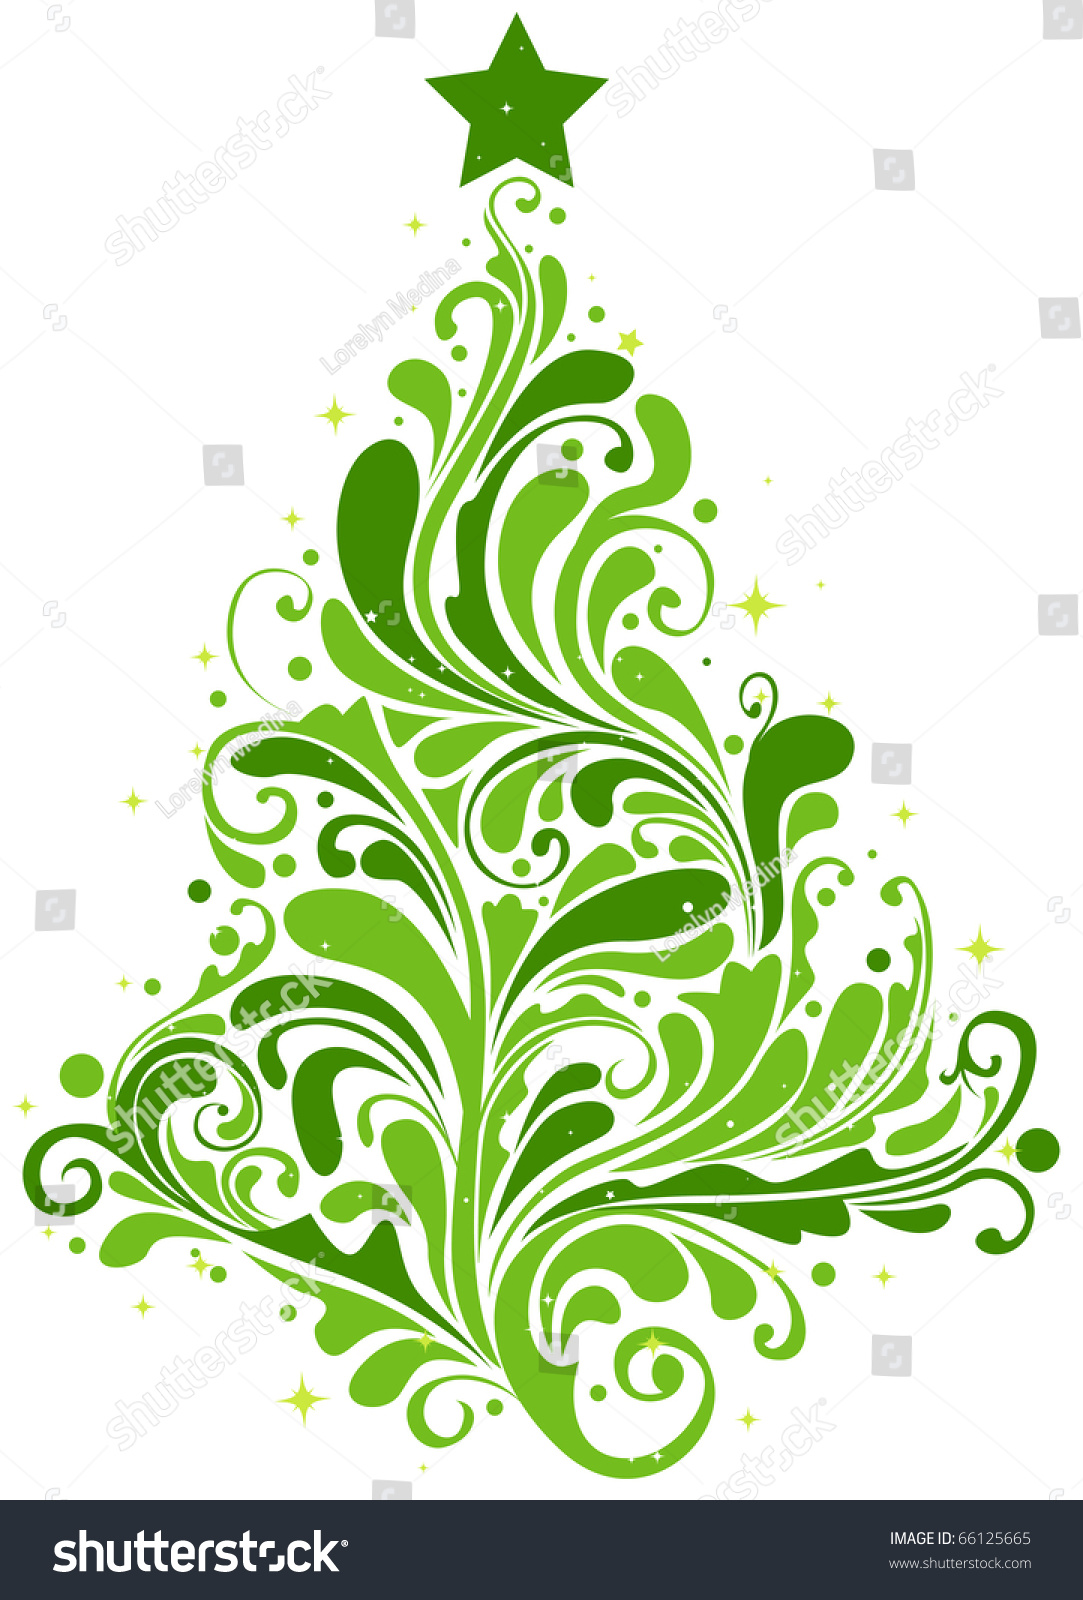 Christmas Tree Design Featuring Abstract Swirls Stock Vector ...